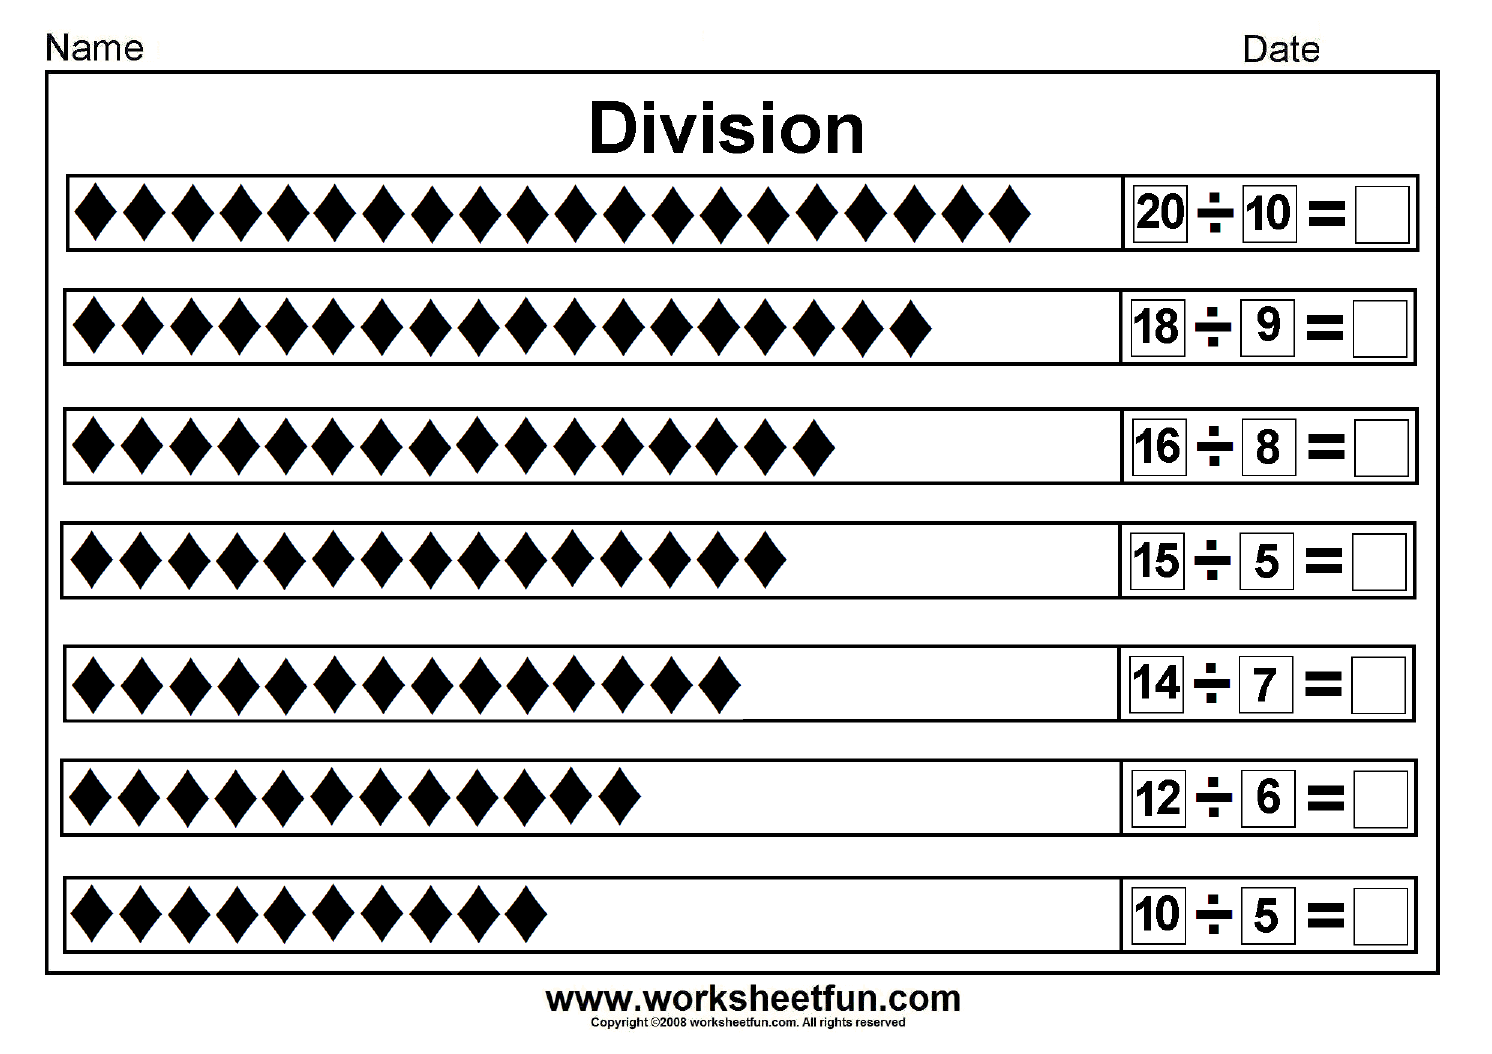 Division Worksheet For 2nd Grade